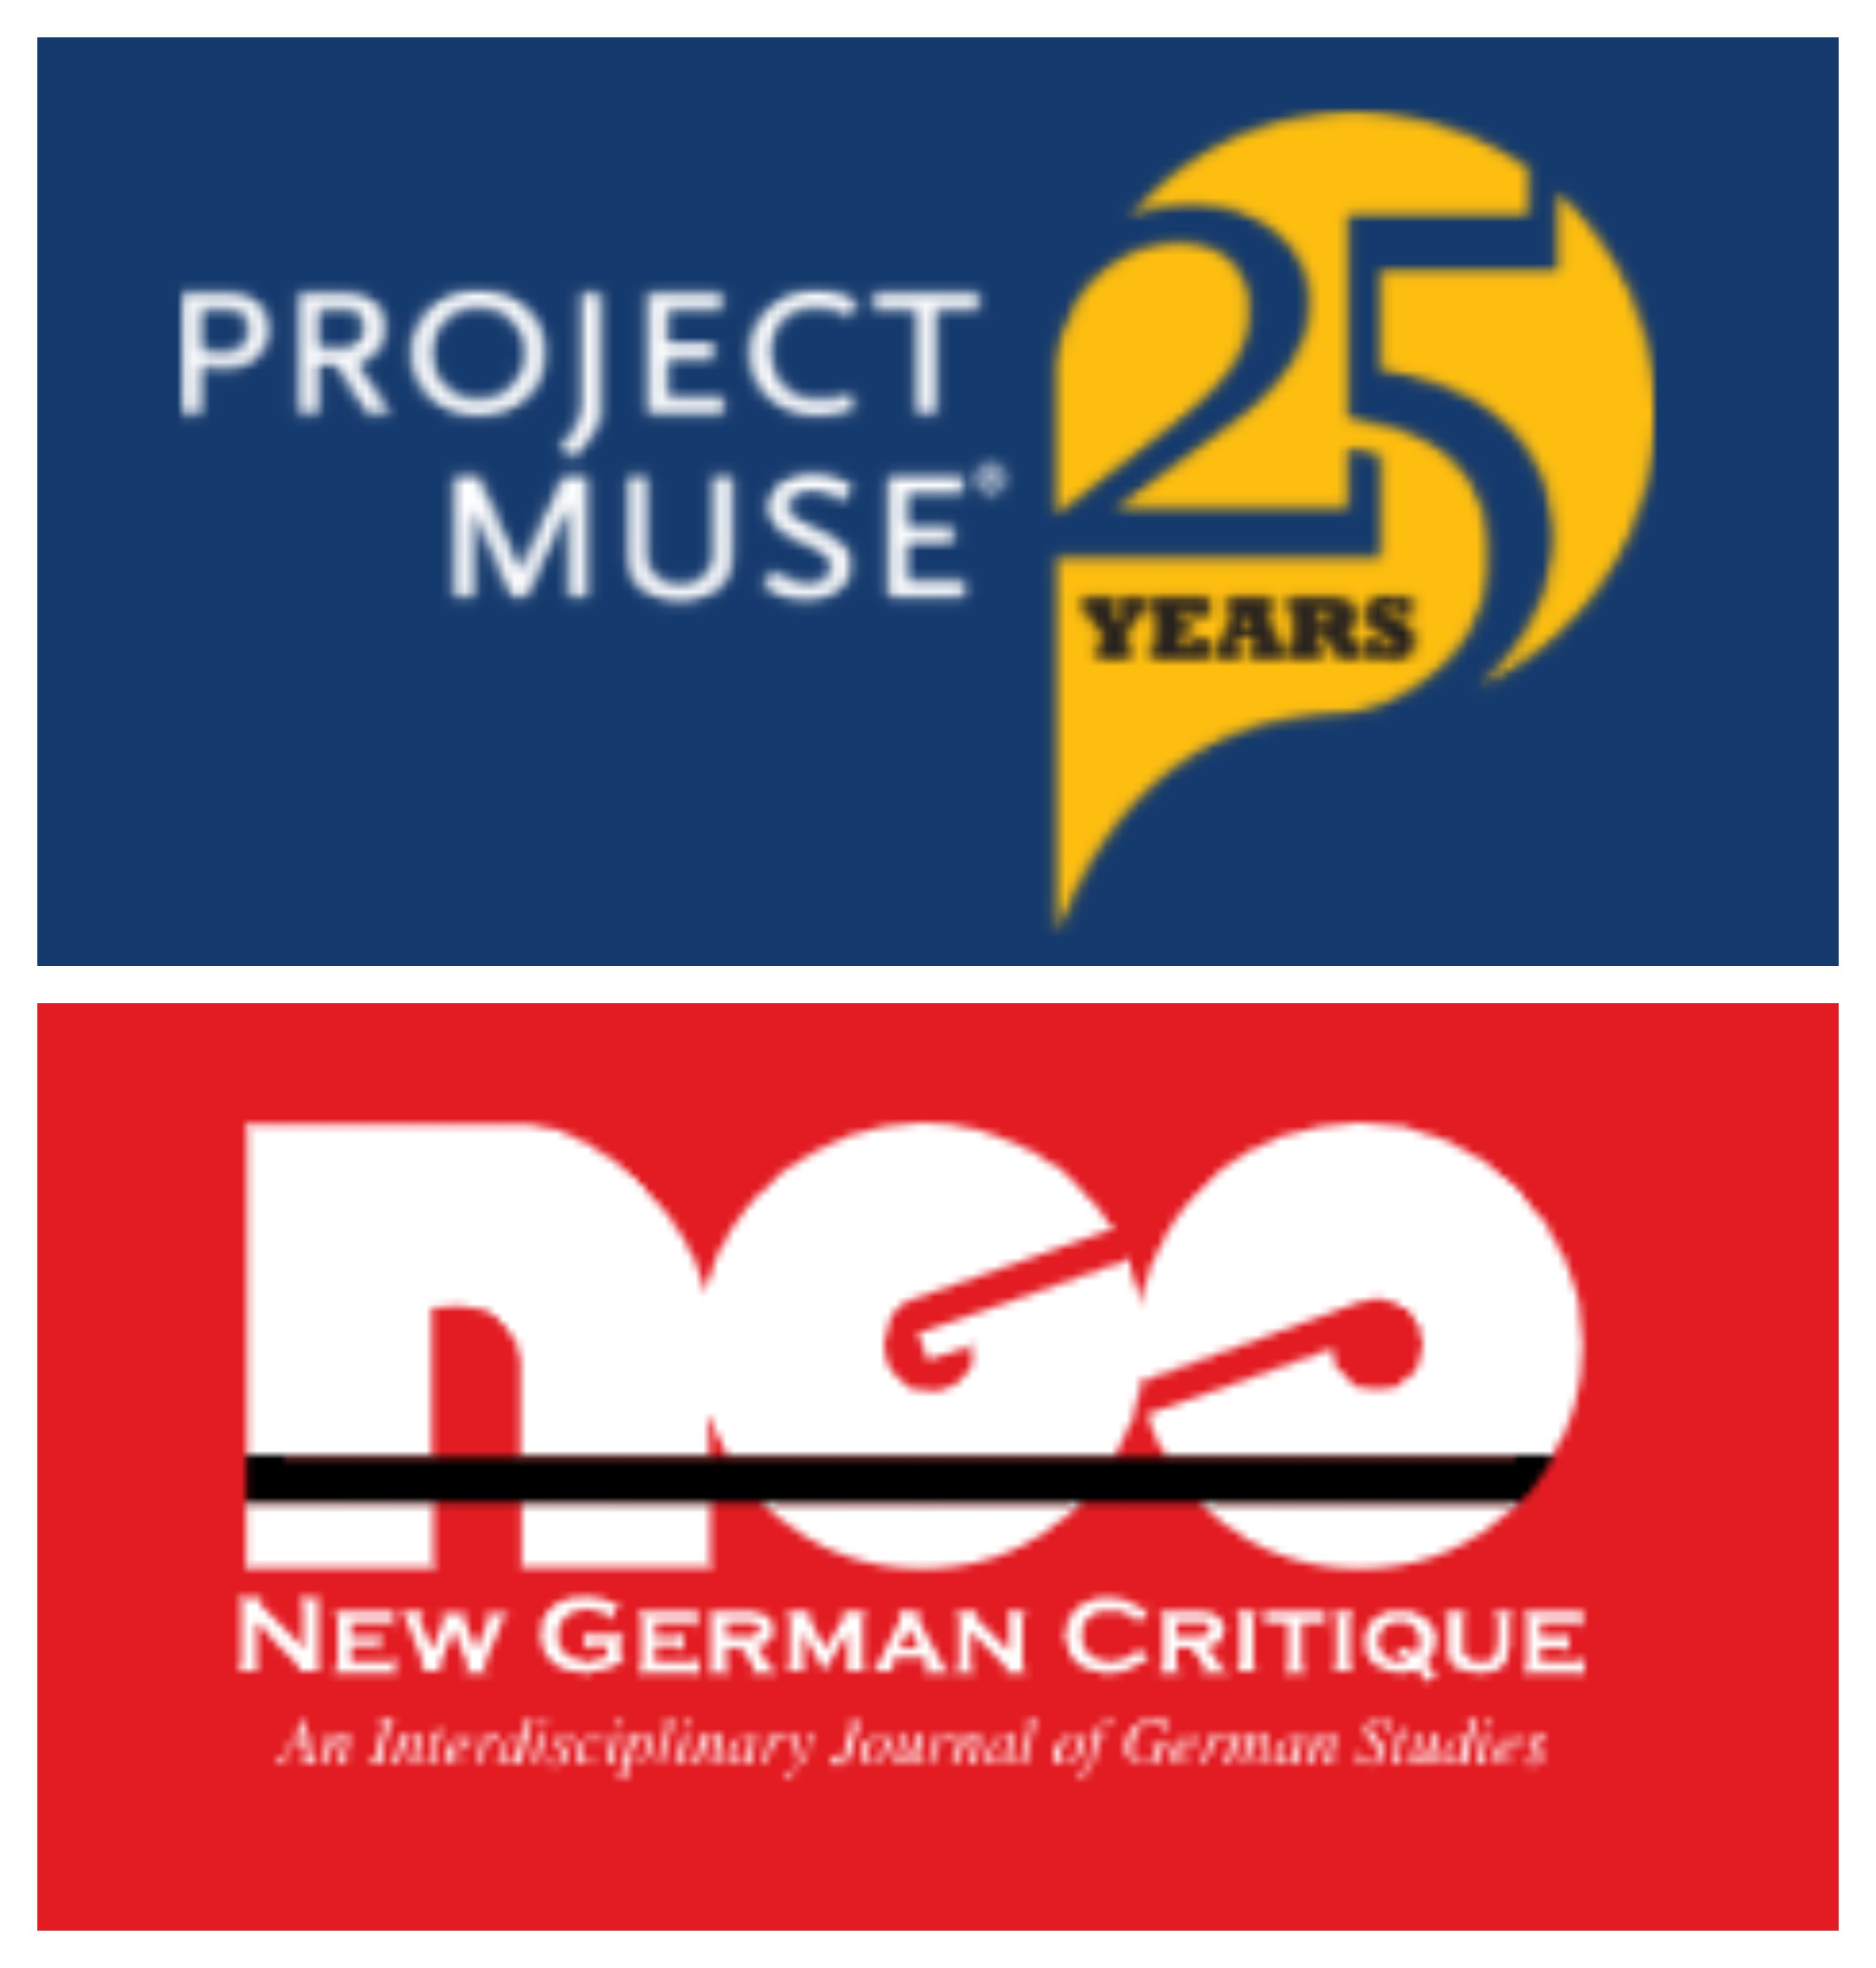 Project Muse and New German Critique logos